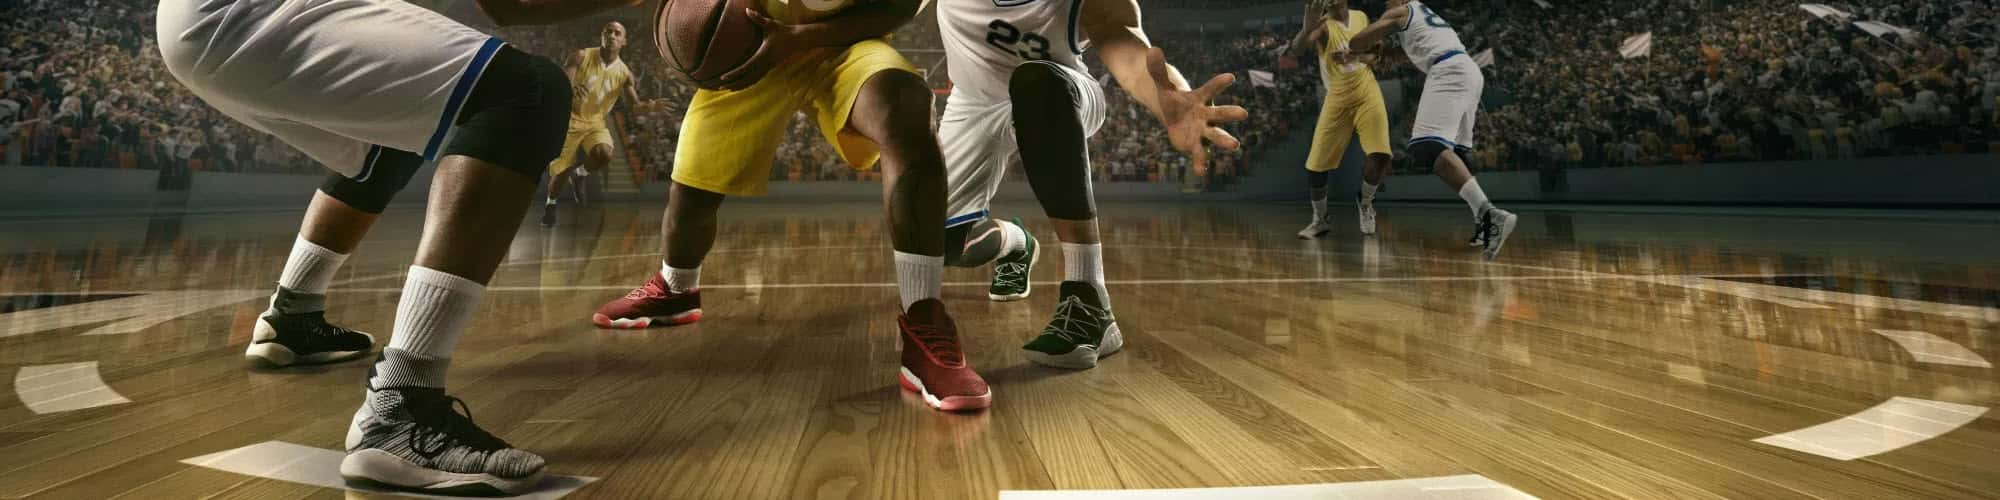 Top 10 Best Ankle Braces for Basketball Players - Buying Guide 2019